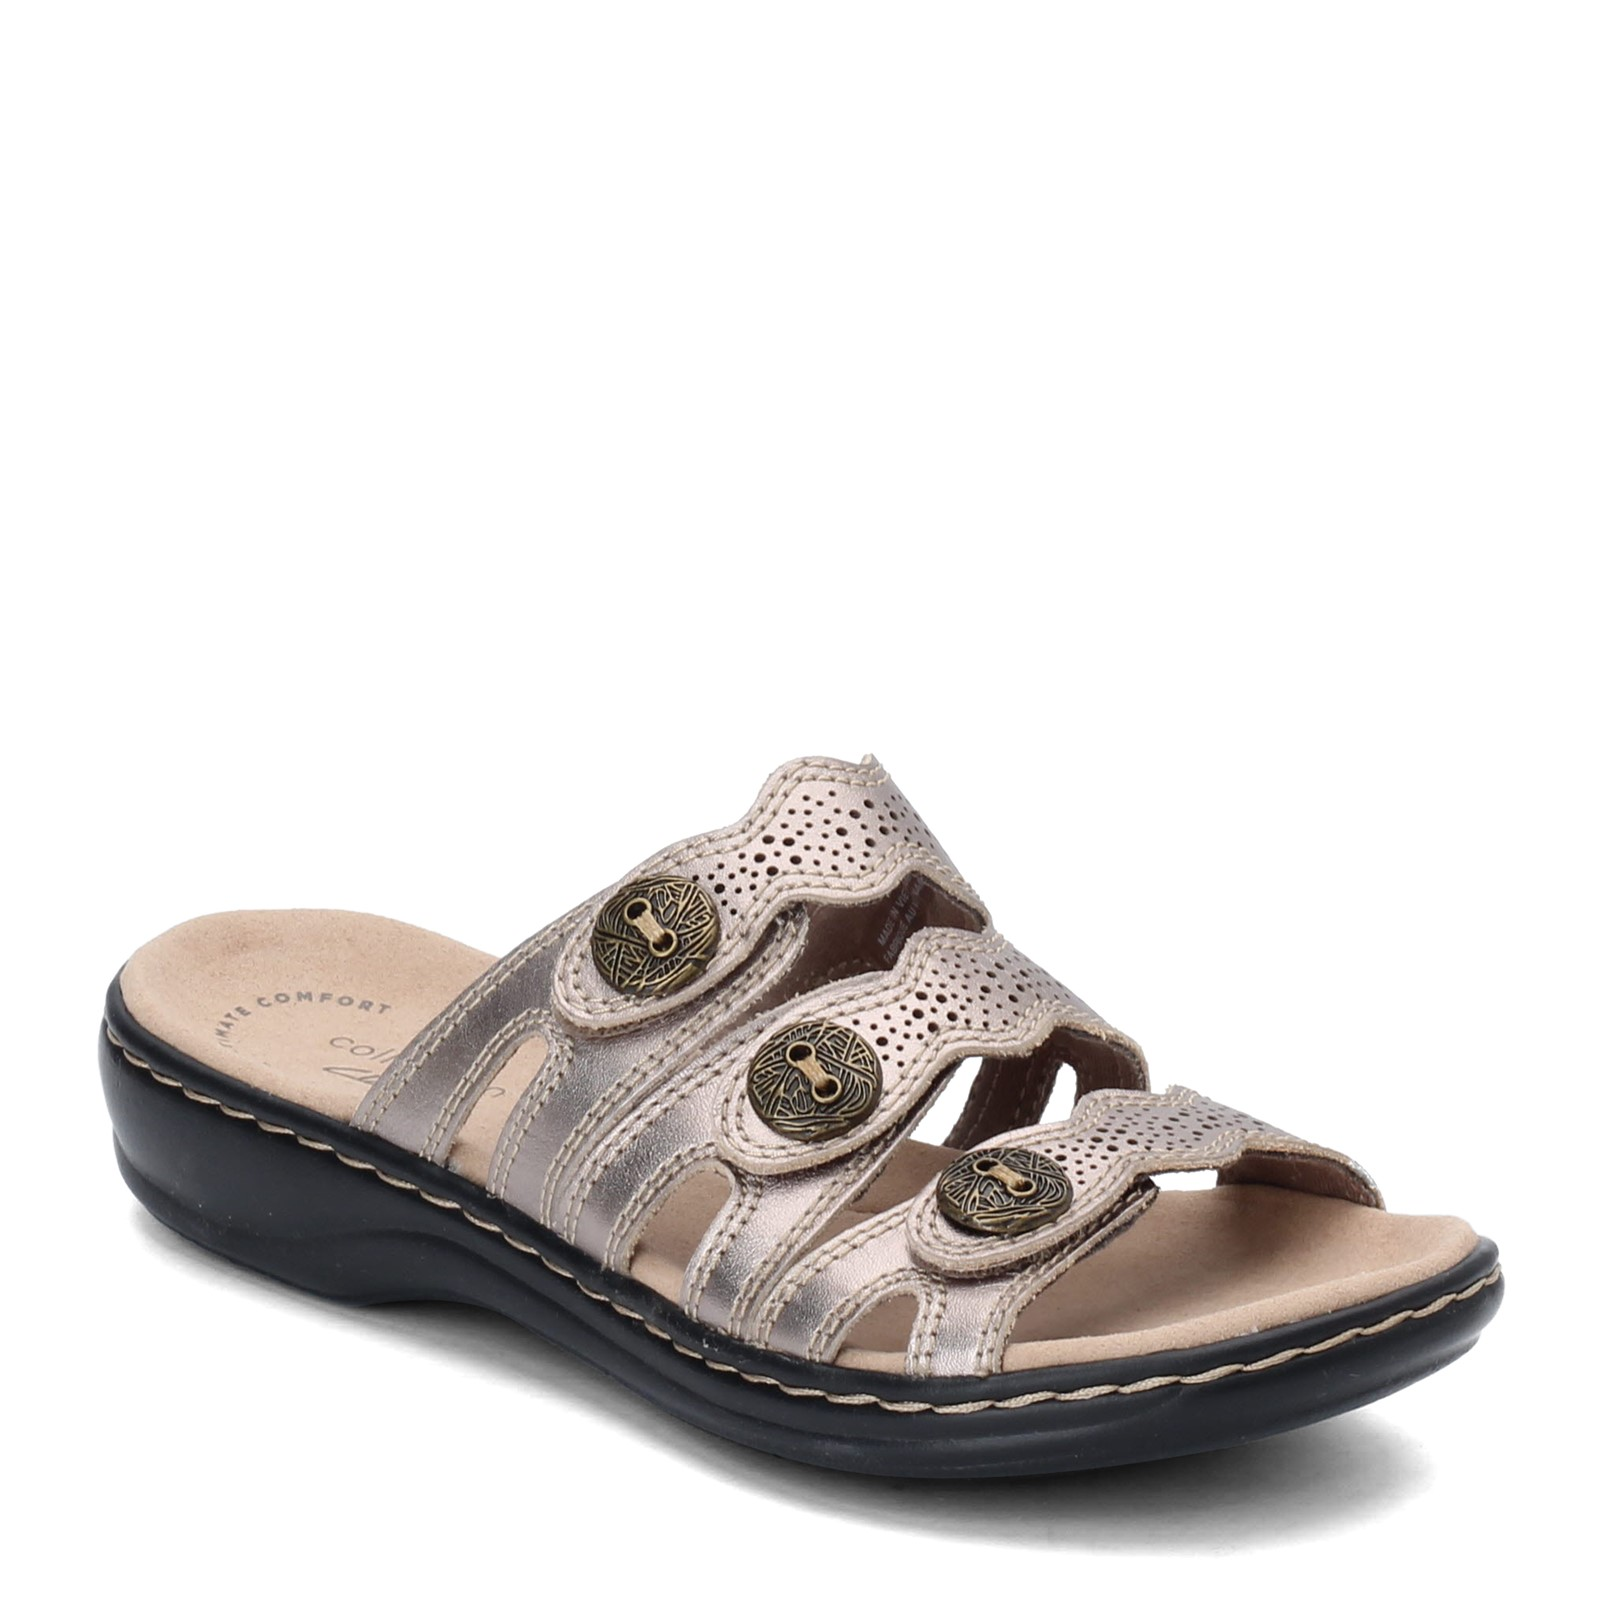 Women's Clarks, Leisa Grace Slide Sandals